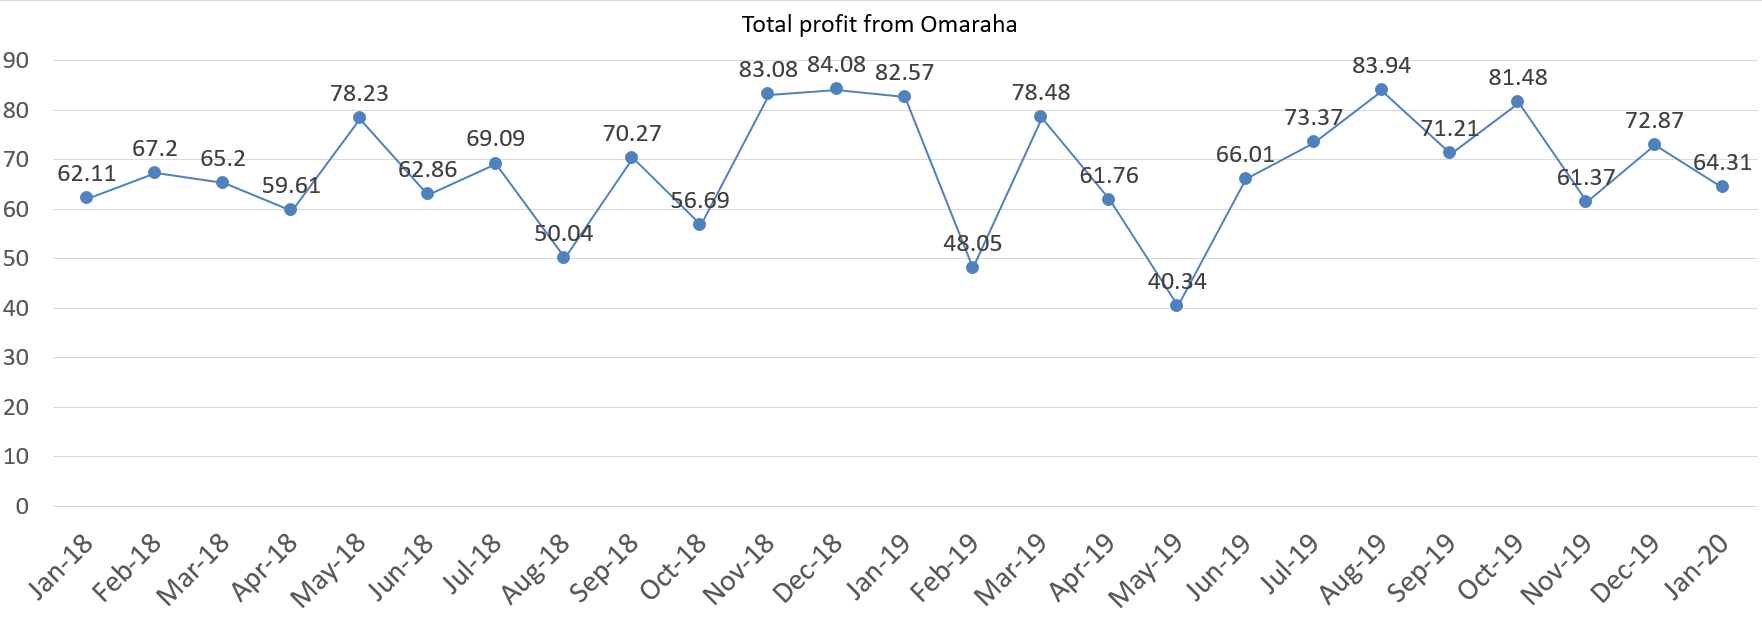 Total profit from Omaraha, january 2020